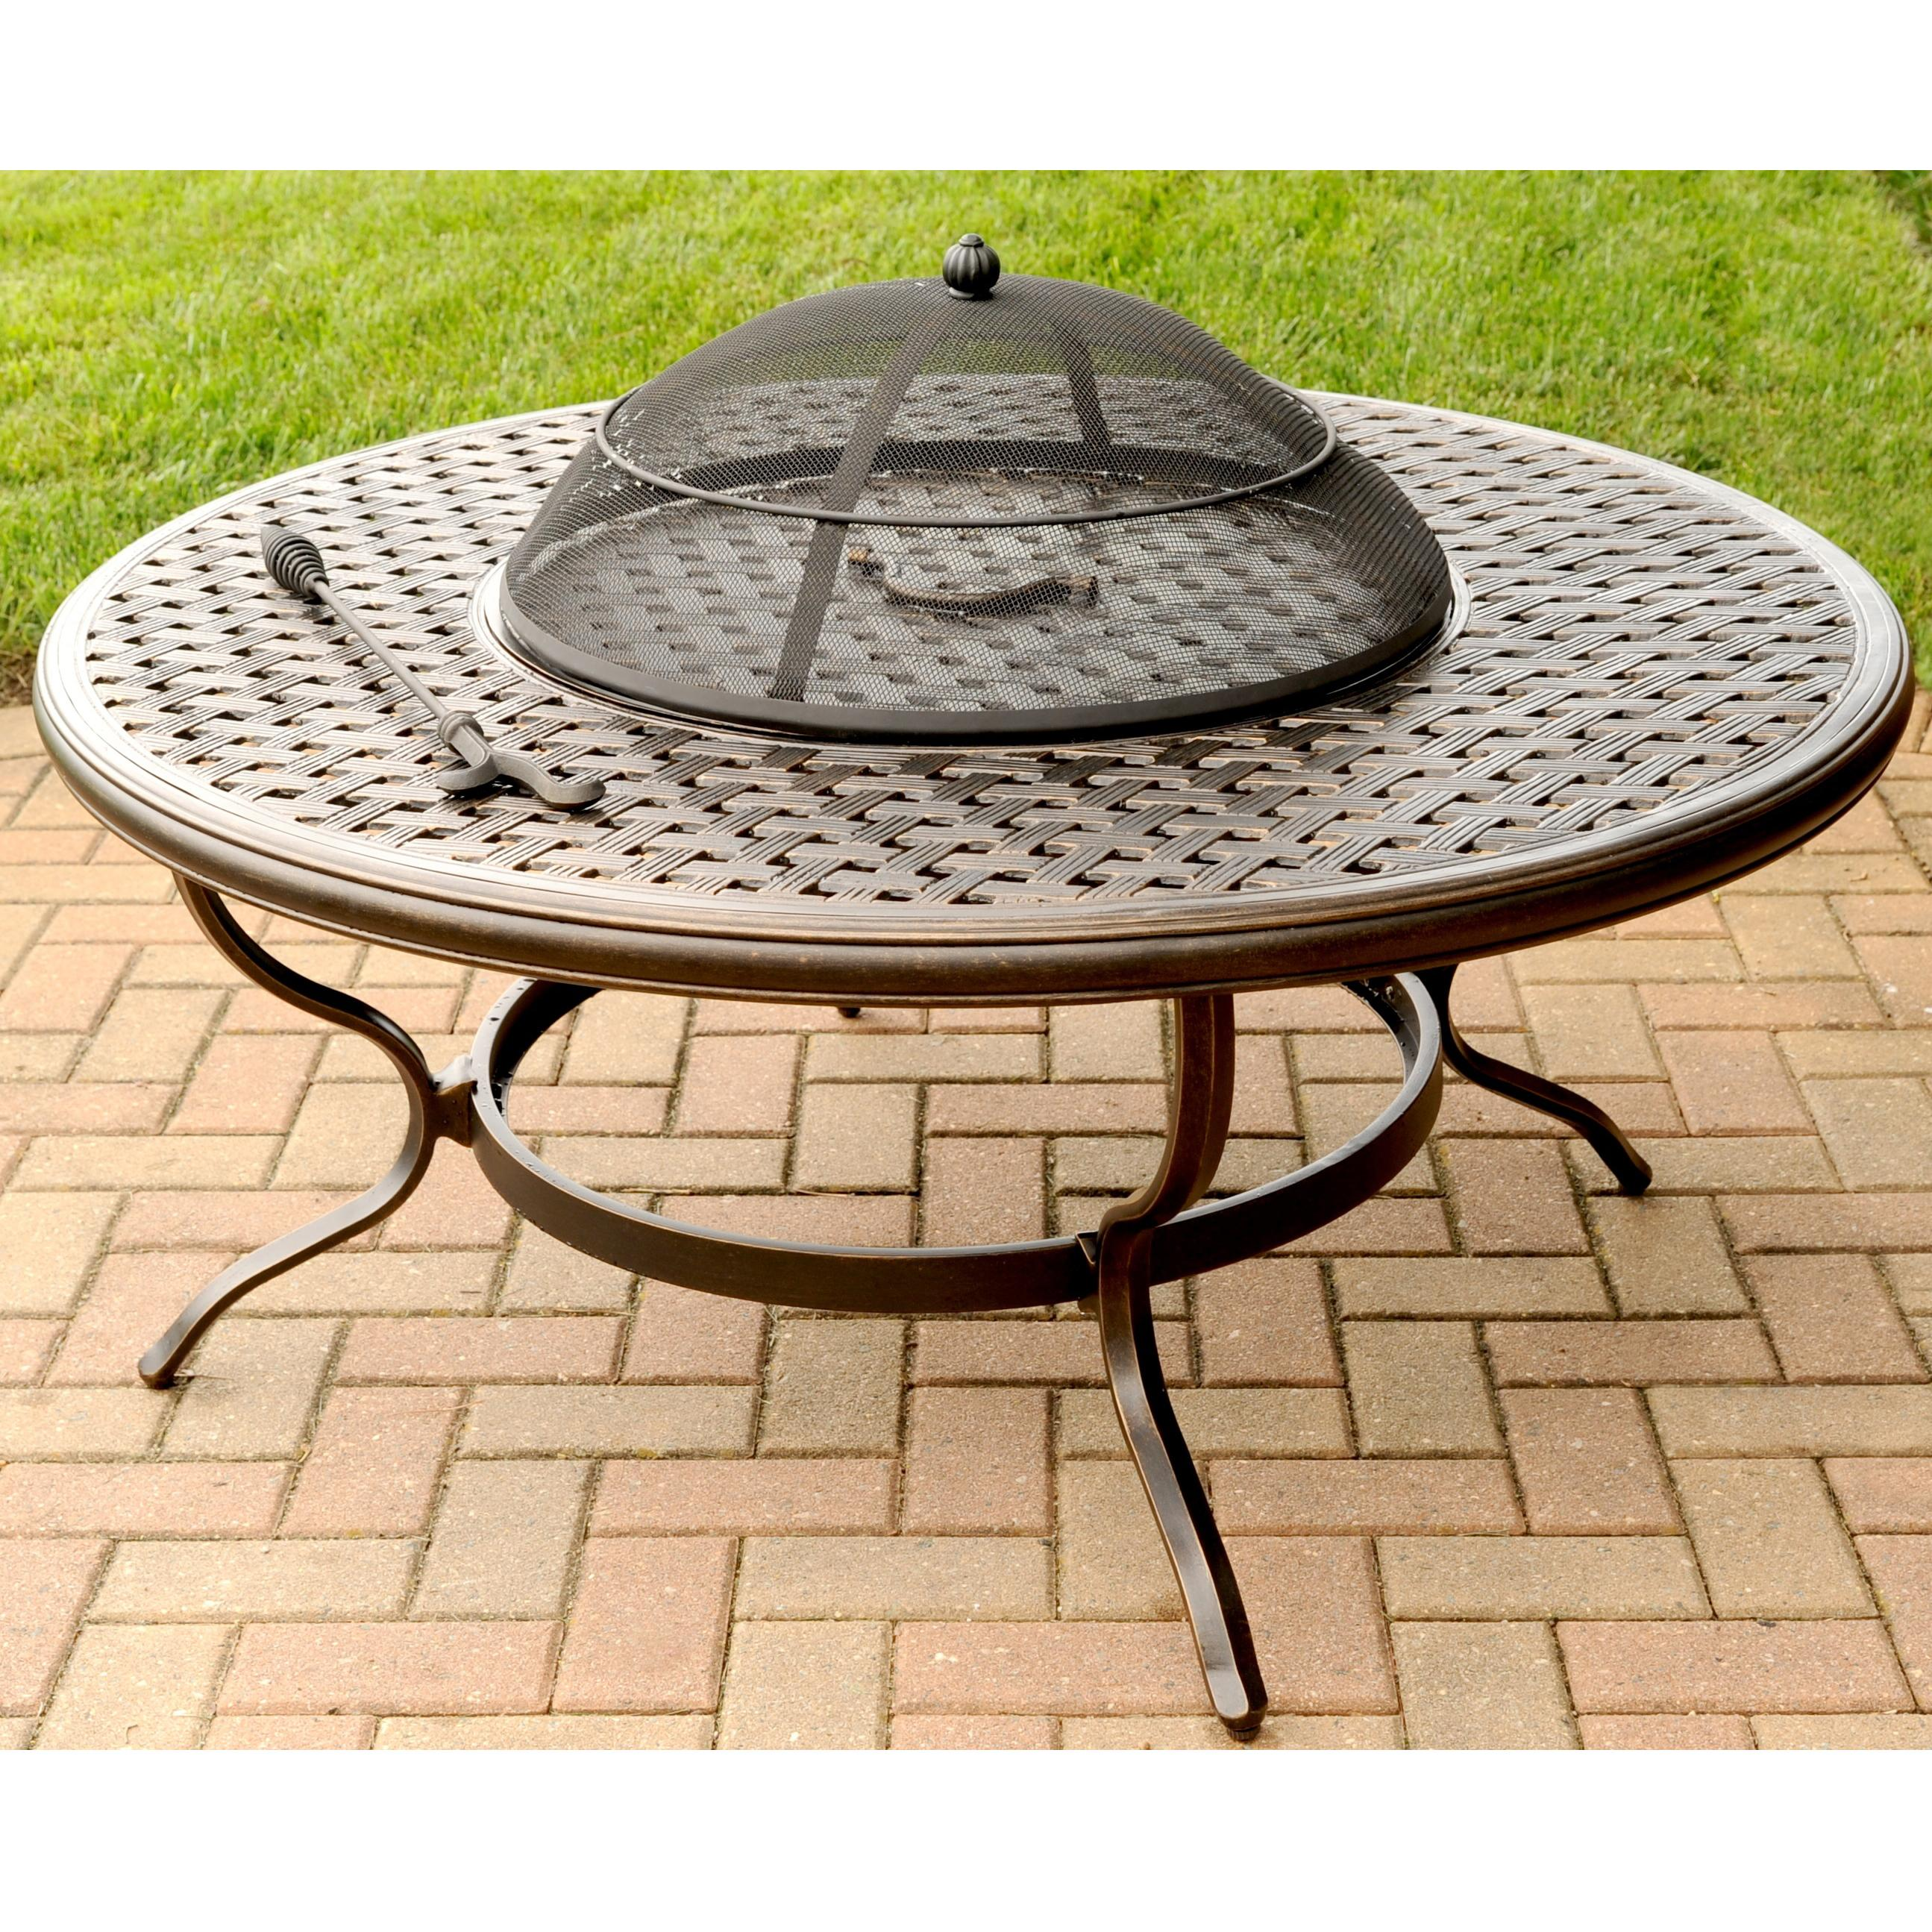 Agio Heritage Alumicast Outdoor Wood Fire Pit With Basket Weave Design